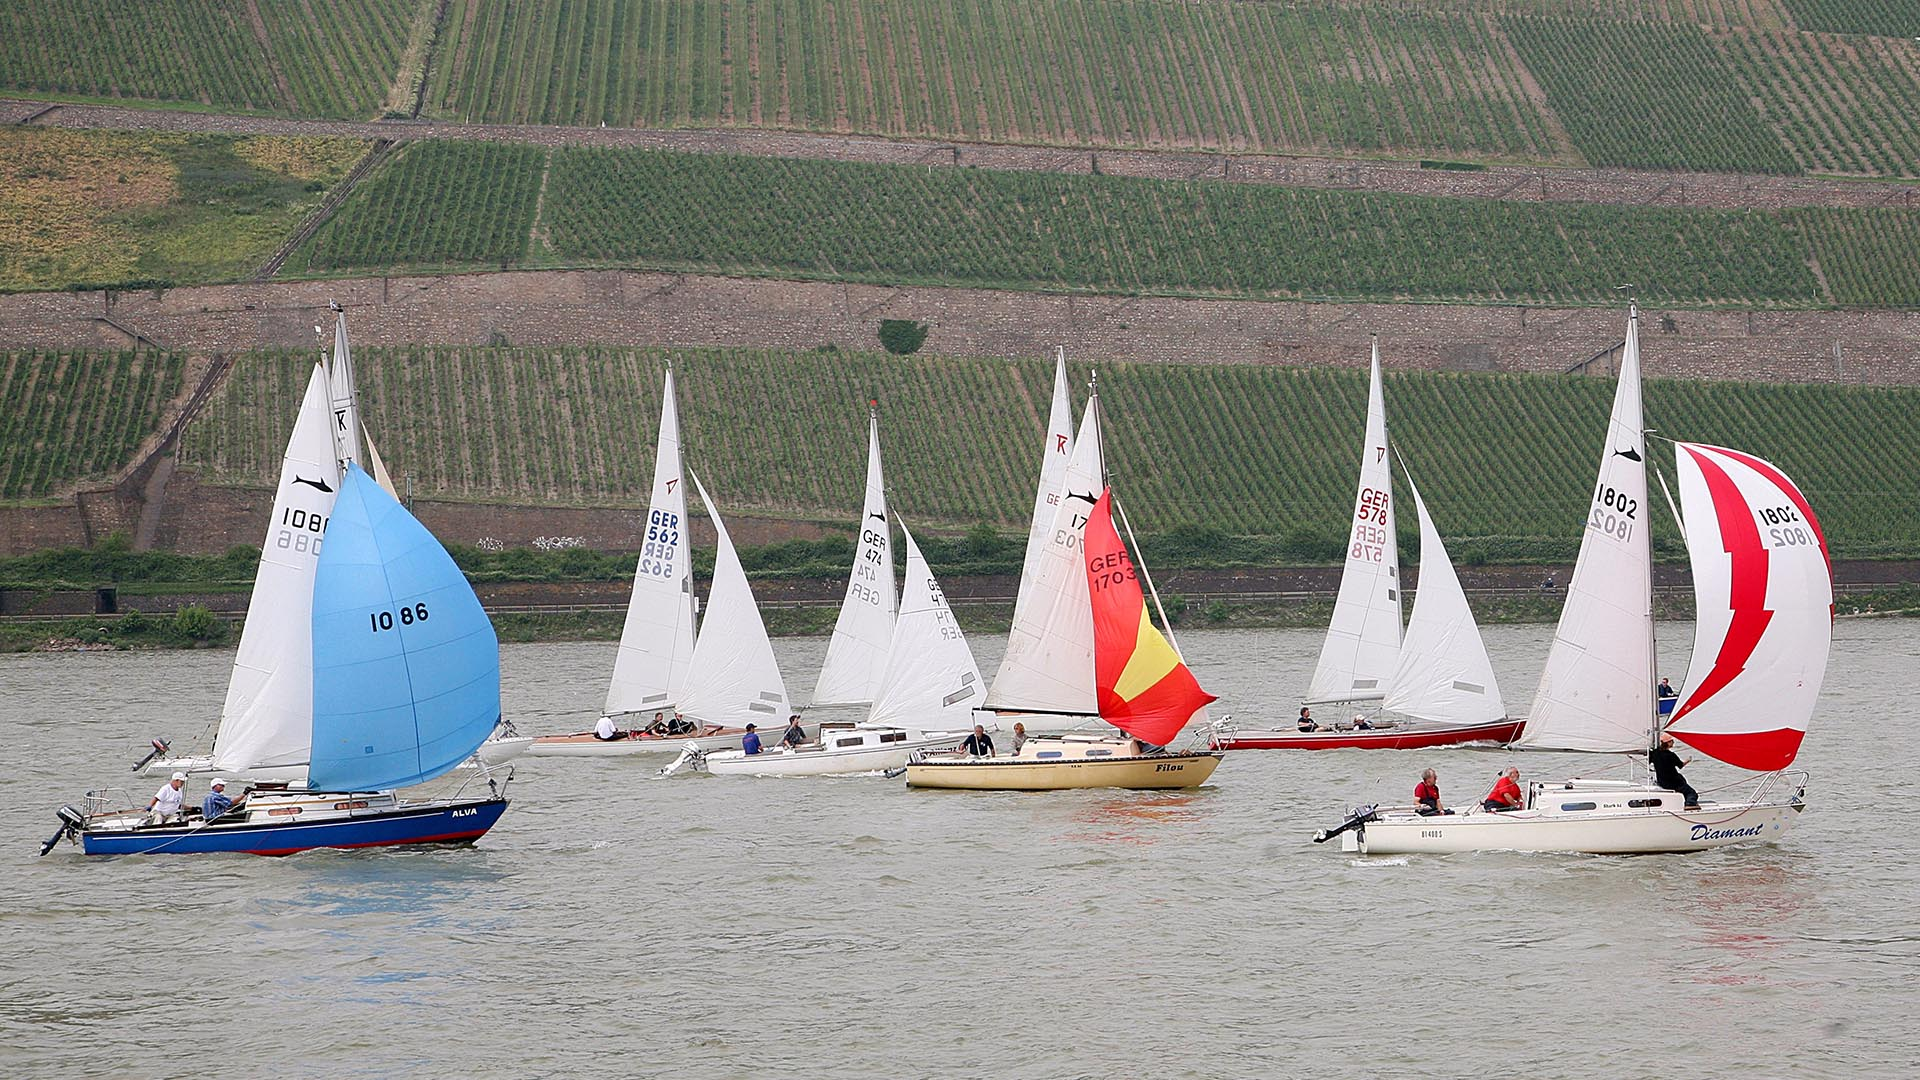 Regatta Hart am Binger Loch